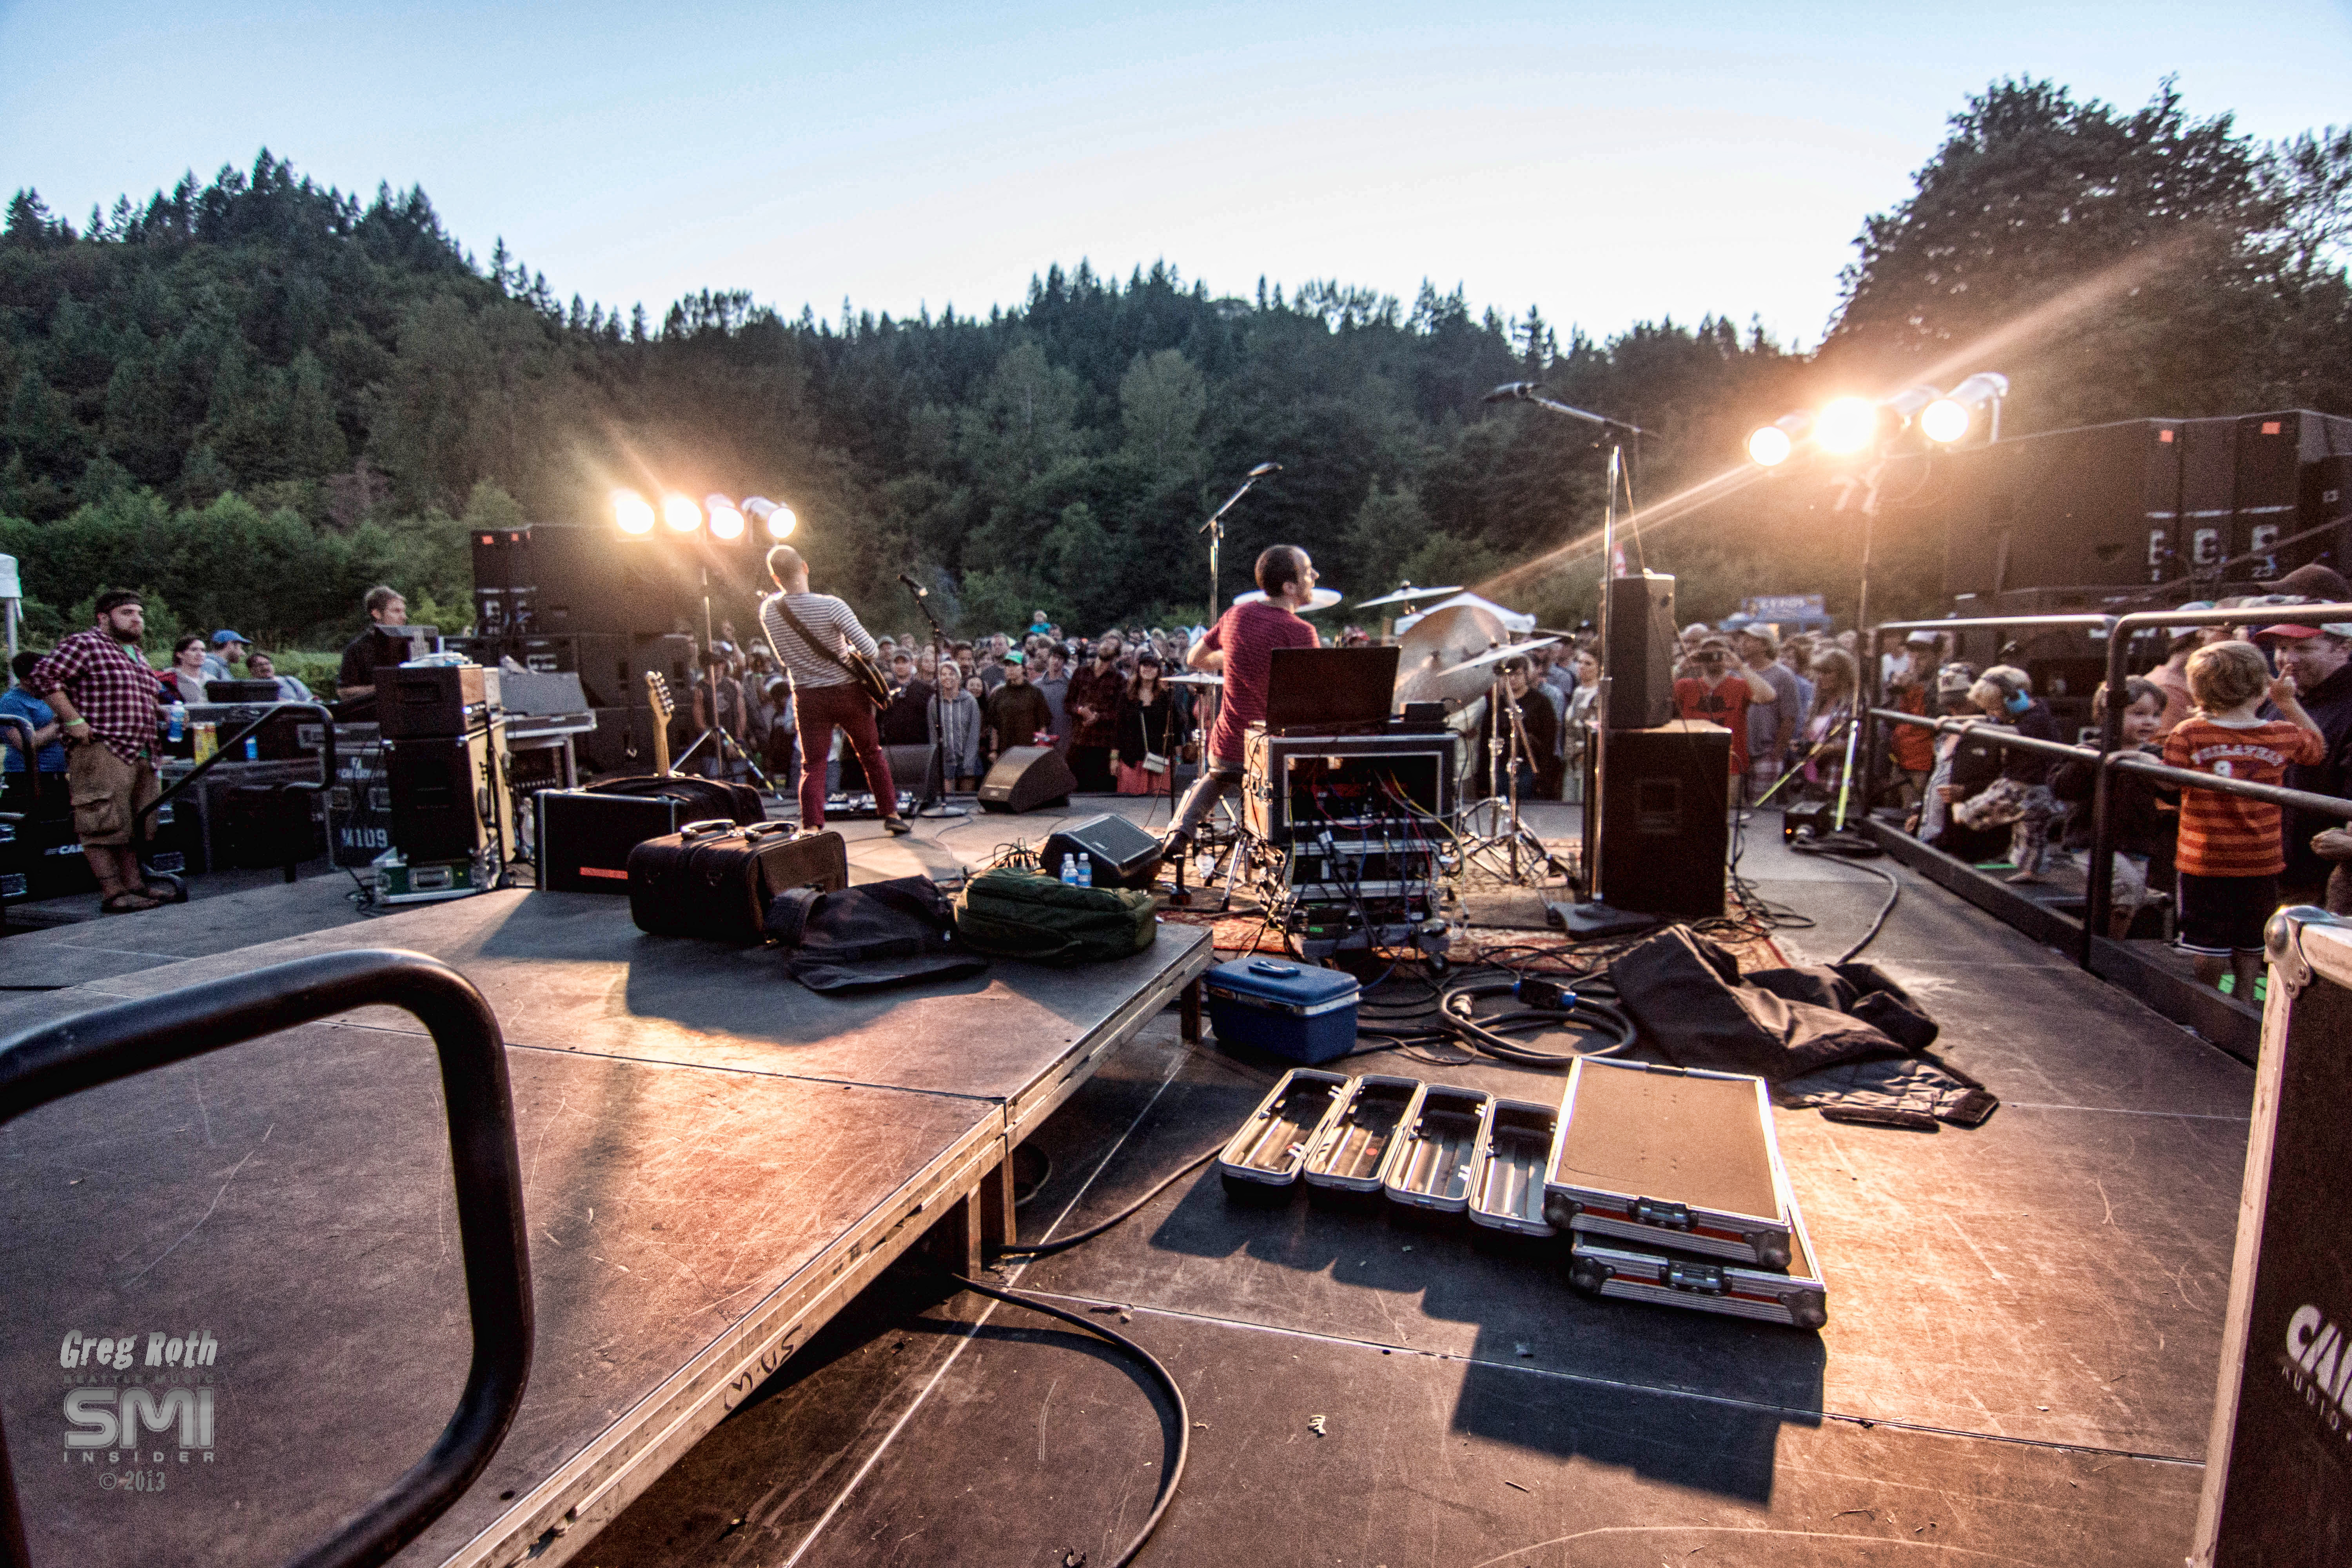 Timber! Outdoor Music Festival (Photo by Greg Roth)